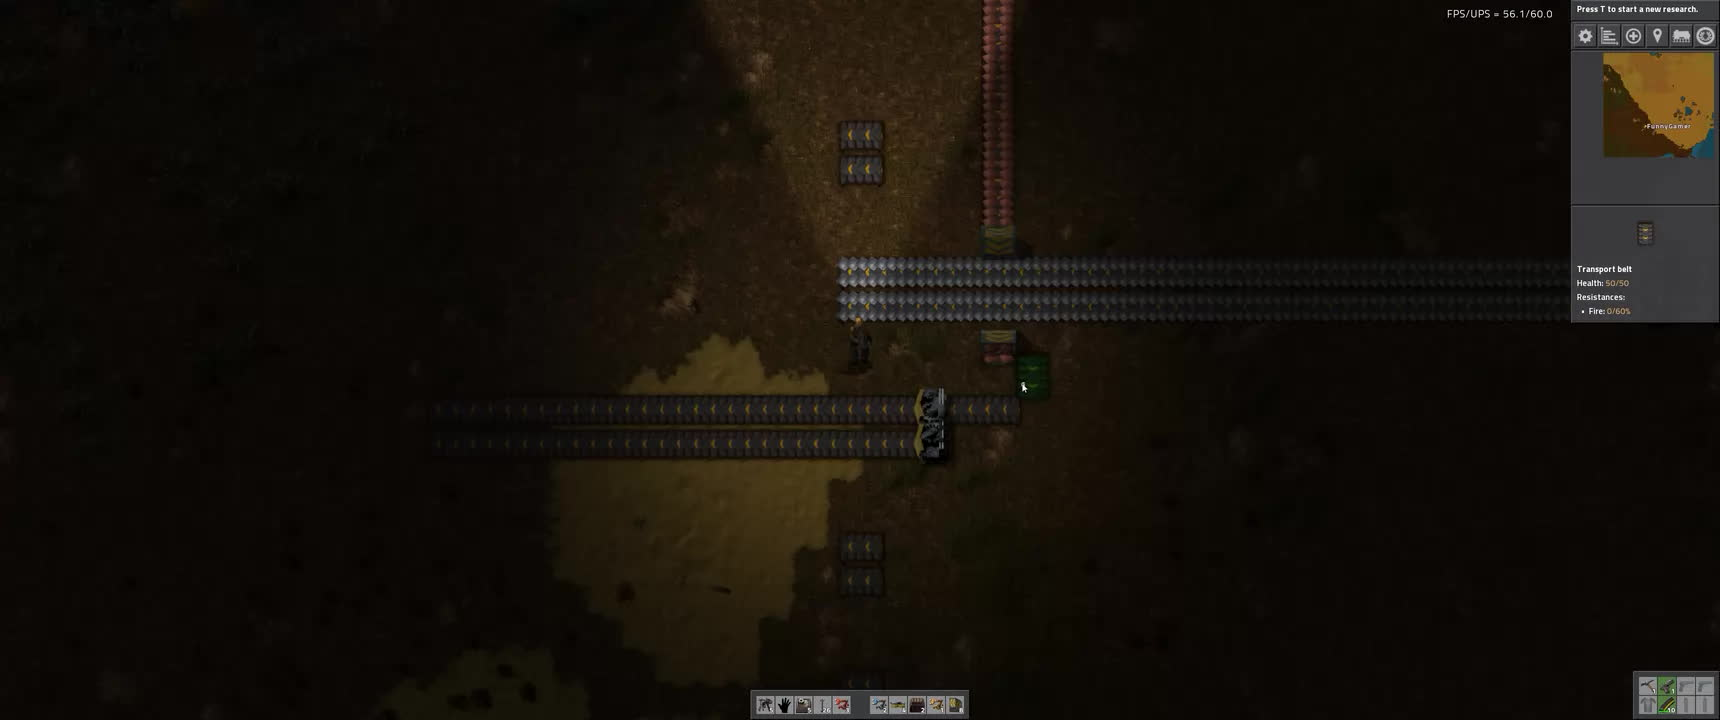 factorio, Why Do Splitters Do this? GIFs